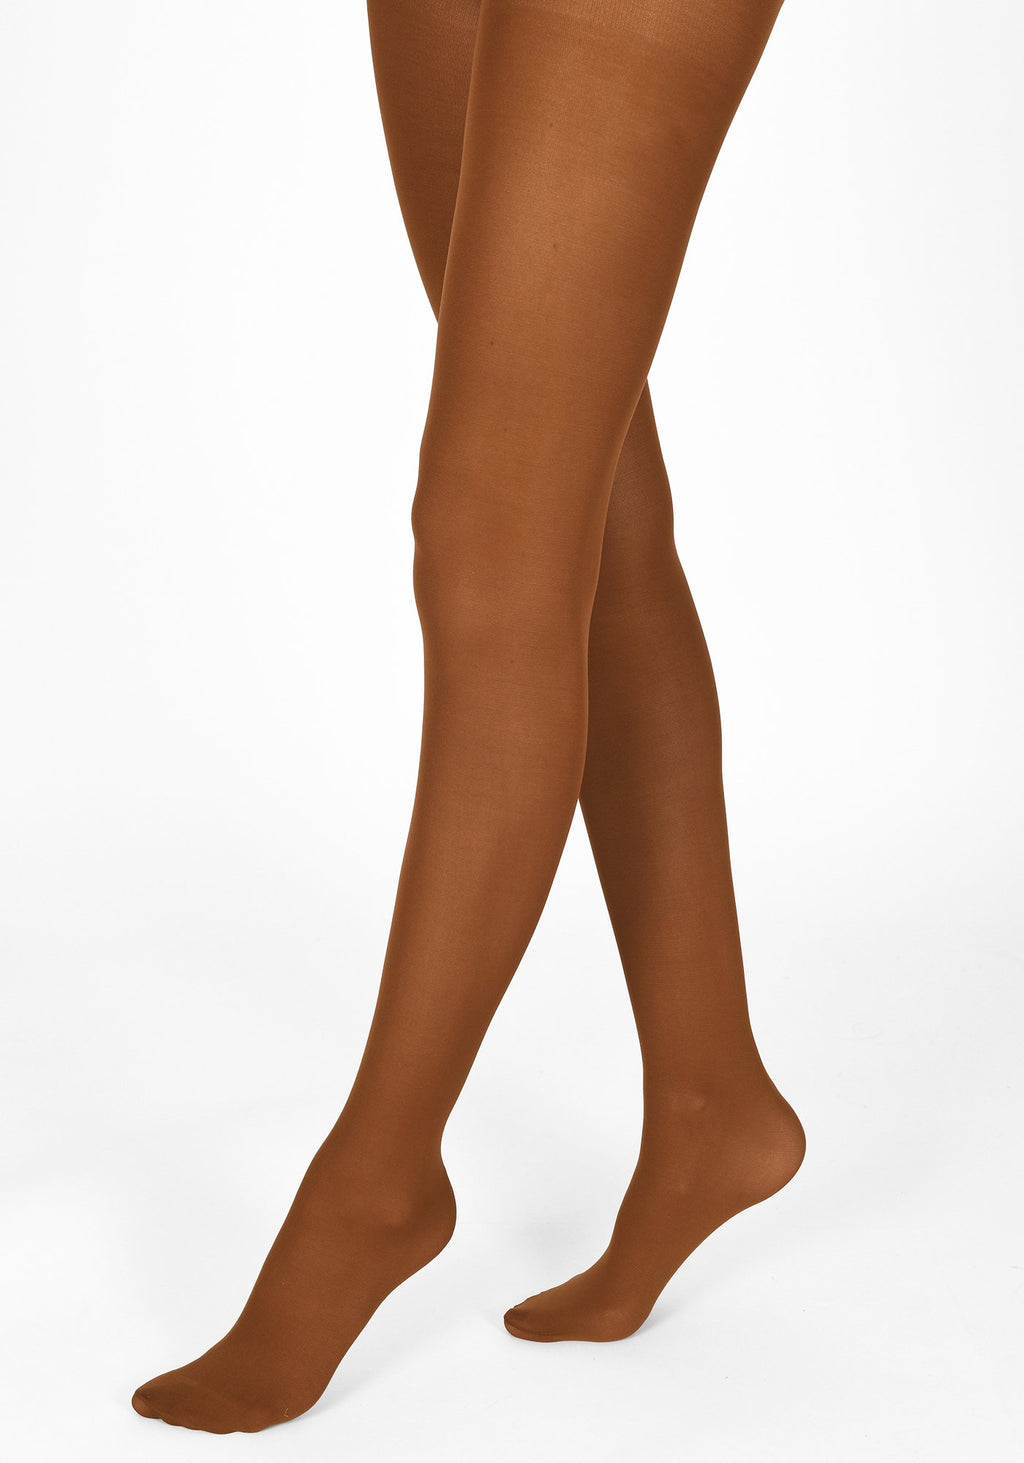 cinnamon tights 40 denier 1